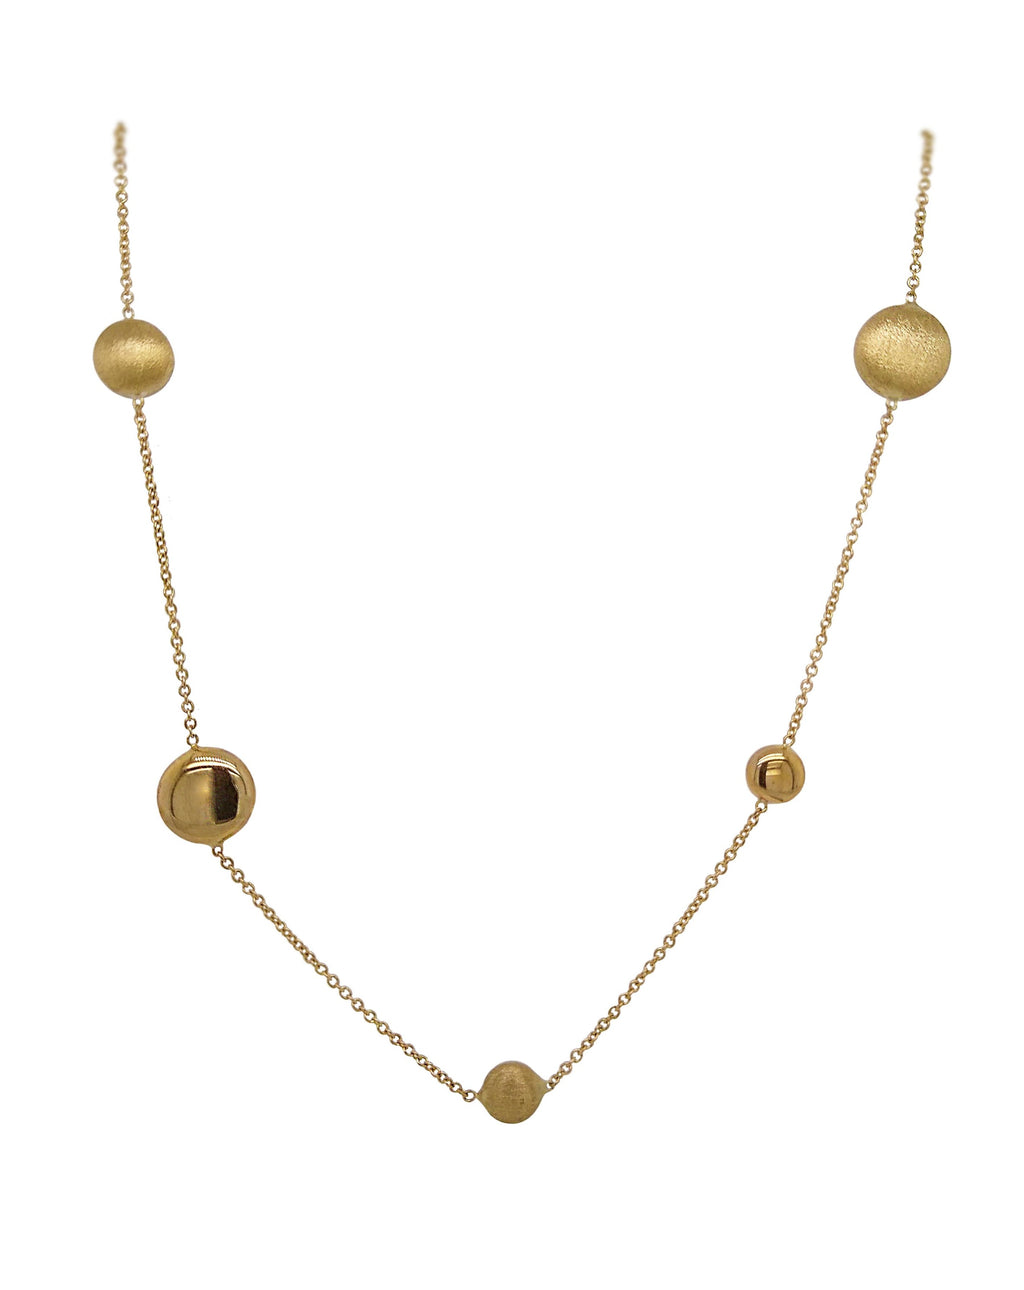 9ct Yellow Gold Beaded Necklace